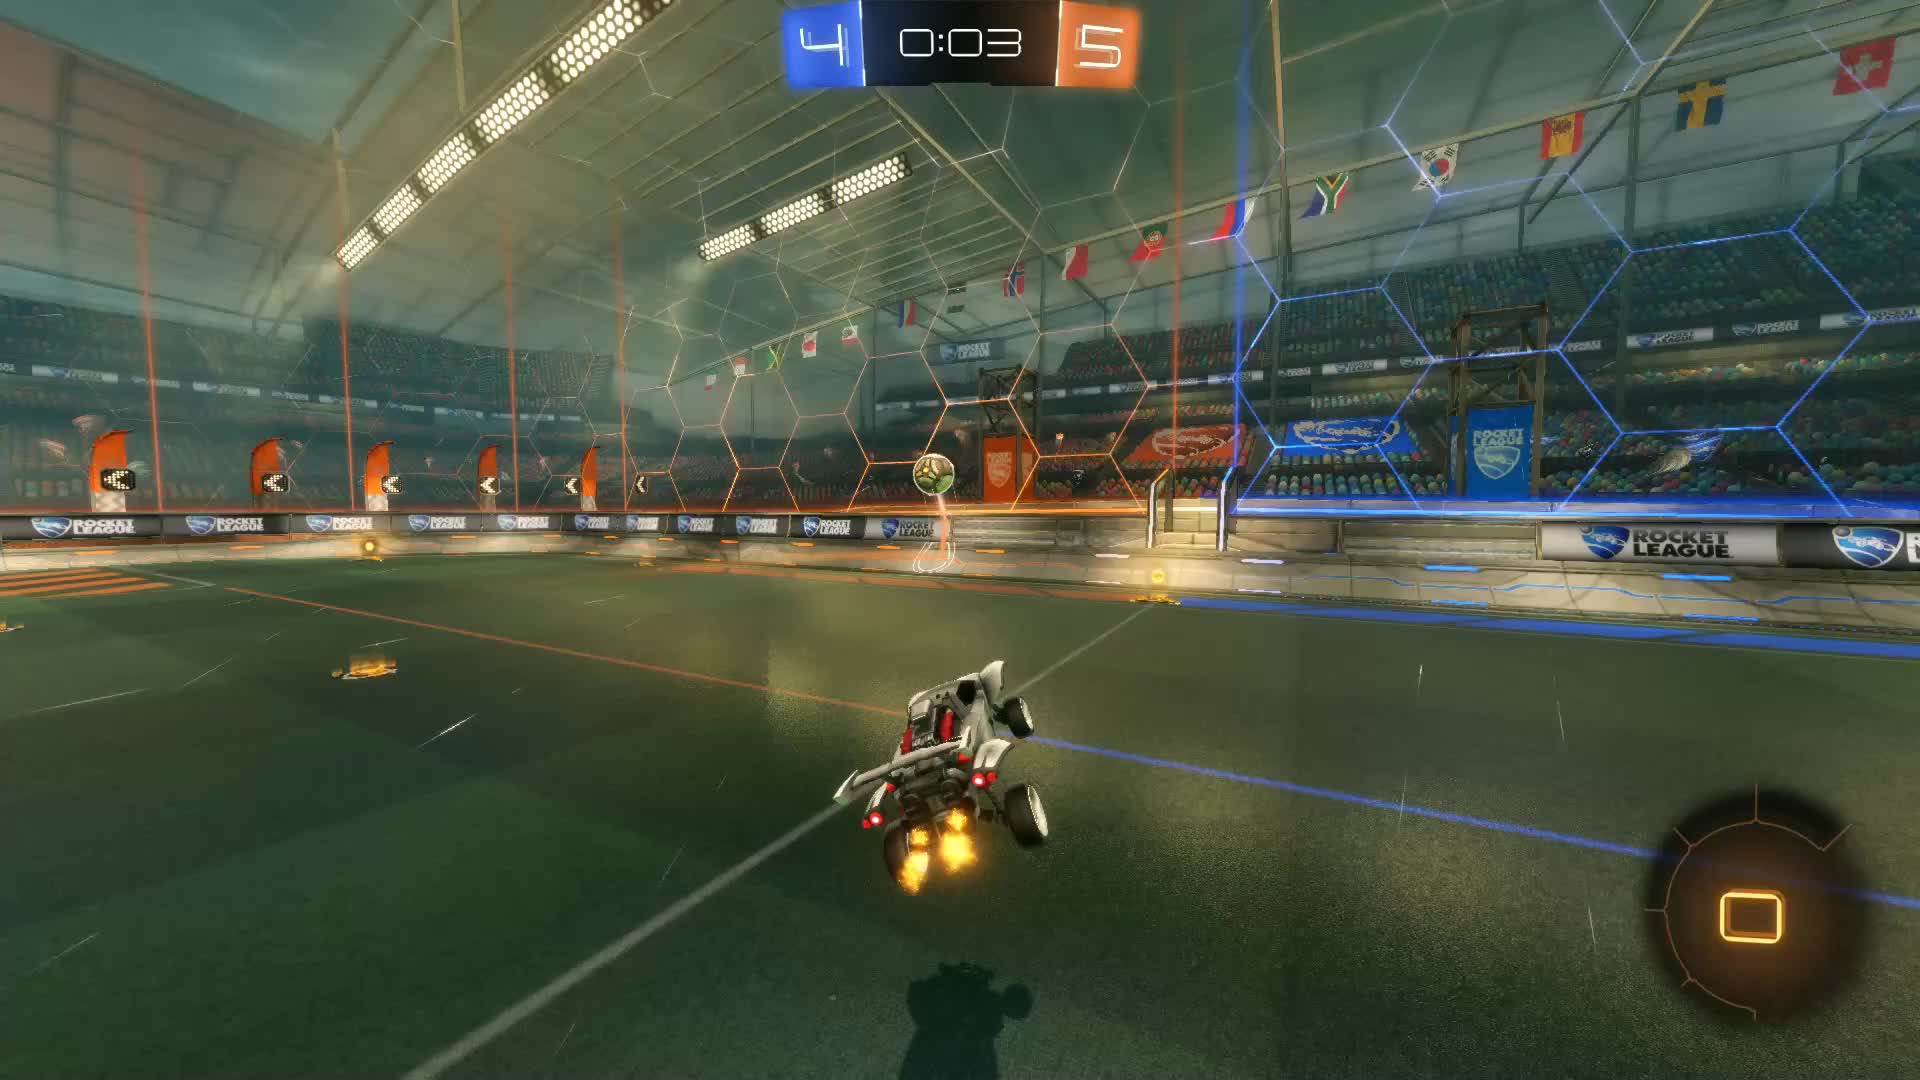 Gif Your Game, GifYourGame, Goal, Nagrola, Rocket League, RocketLeague, Equalizer Double GIFs